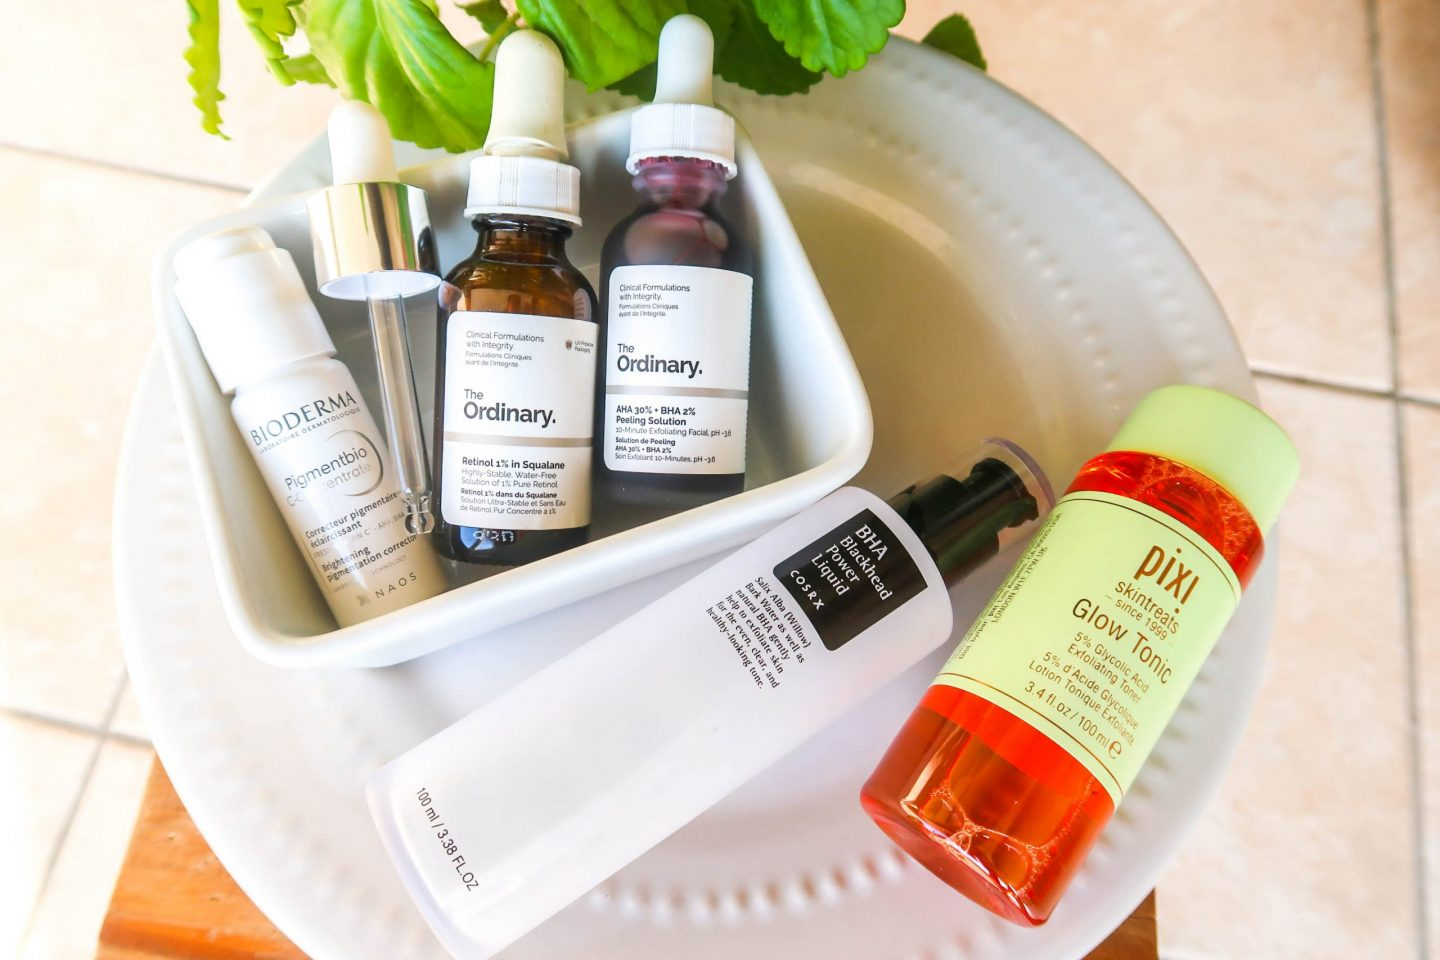 skincare actives that i use in my routine